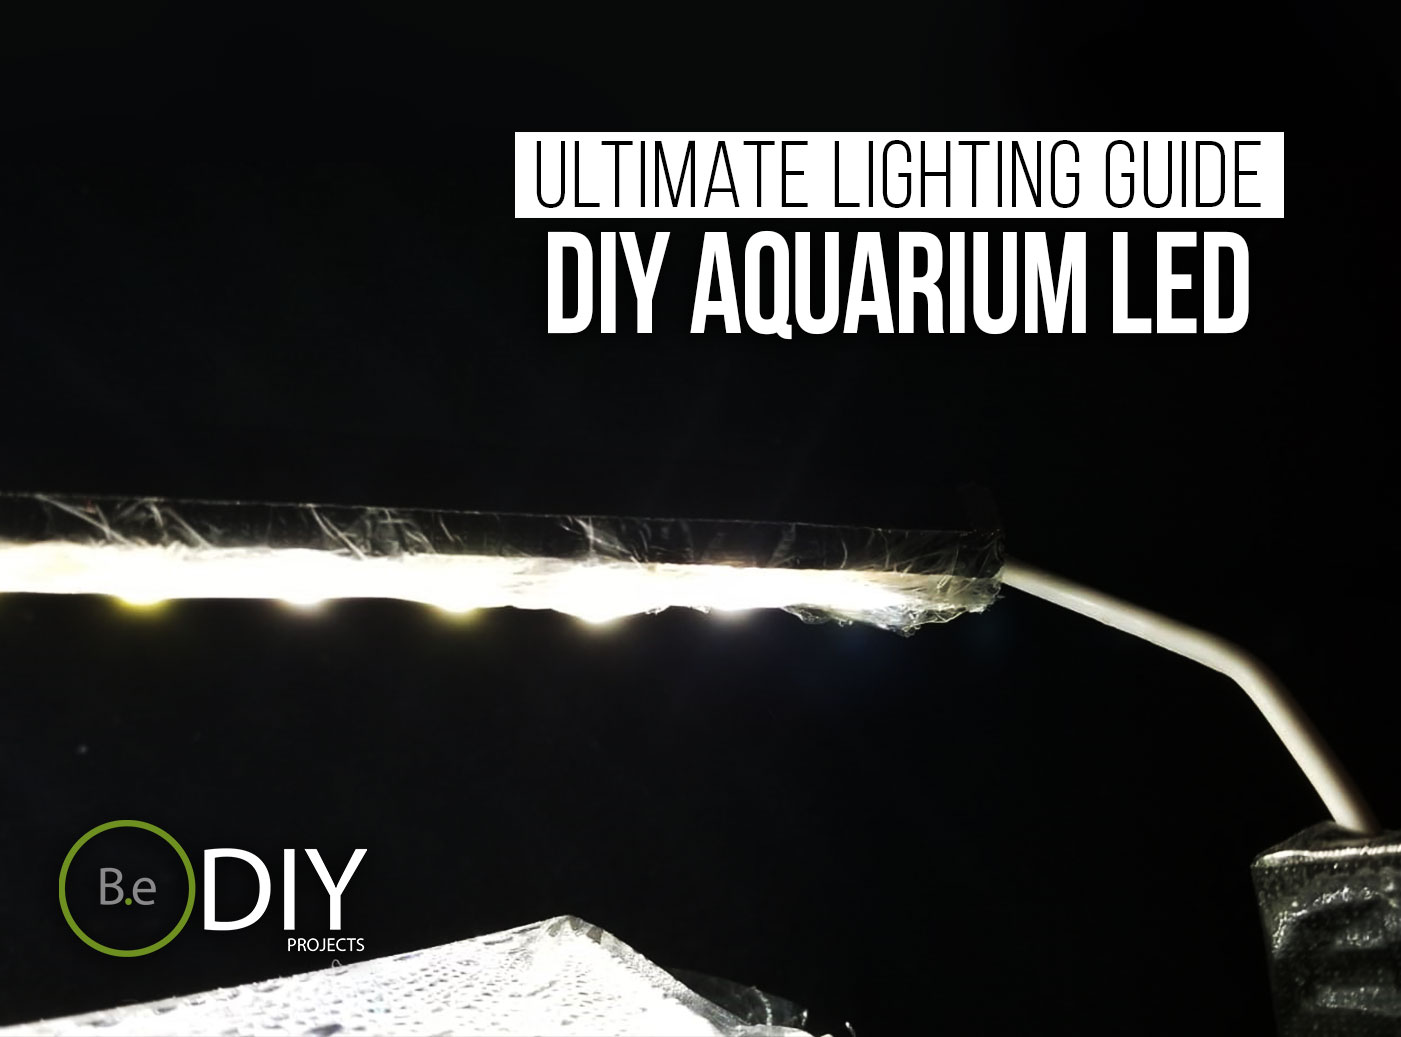 diy aquarium lights thumbnail